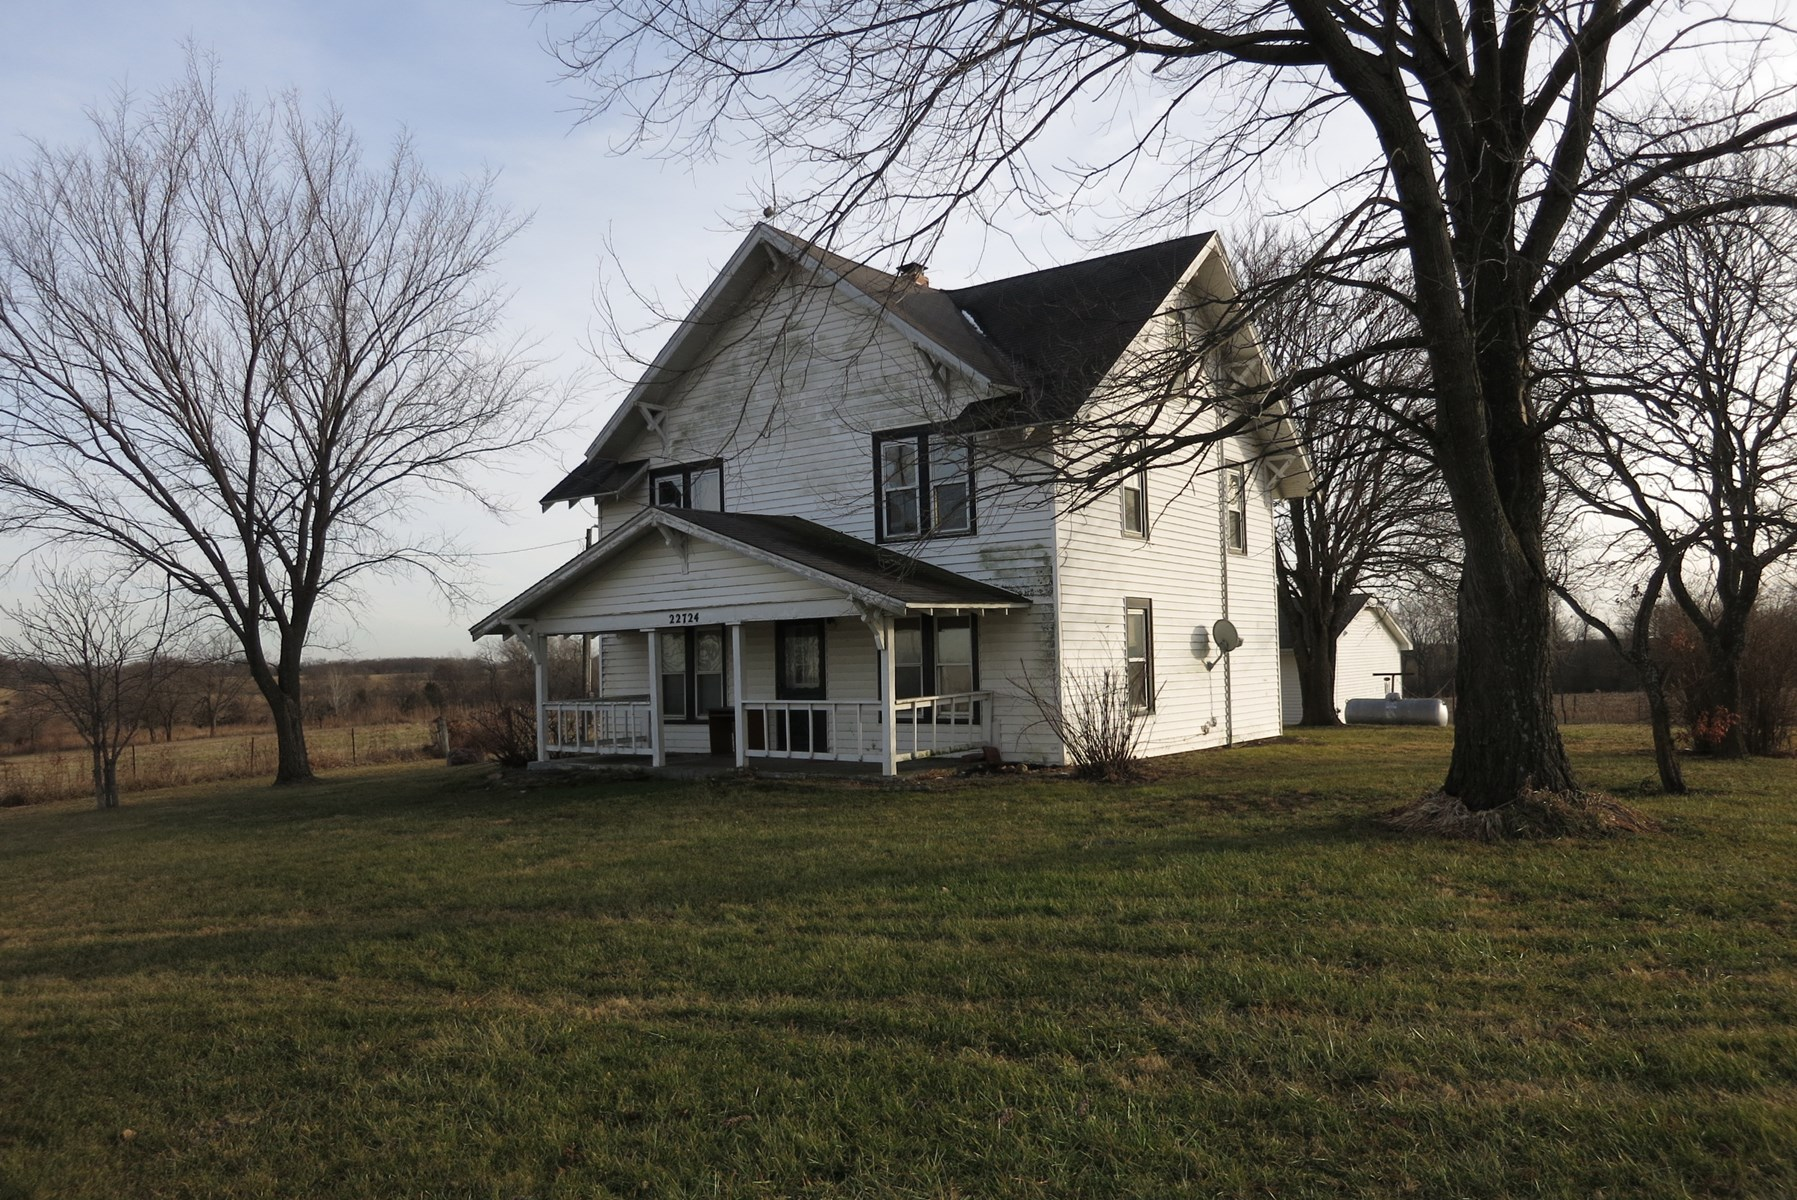 For Sale Country Home on 12.8 Acres m/l